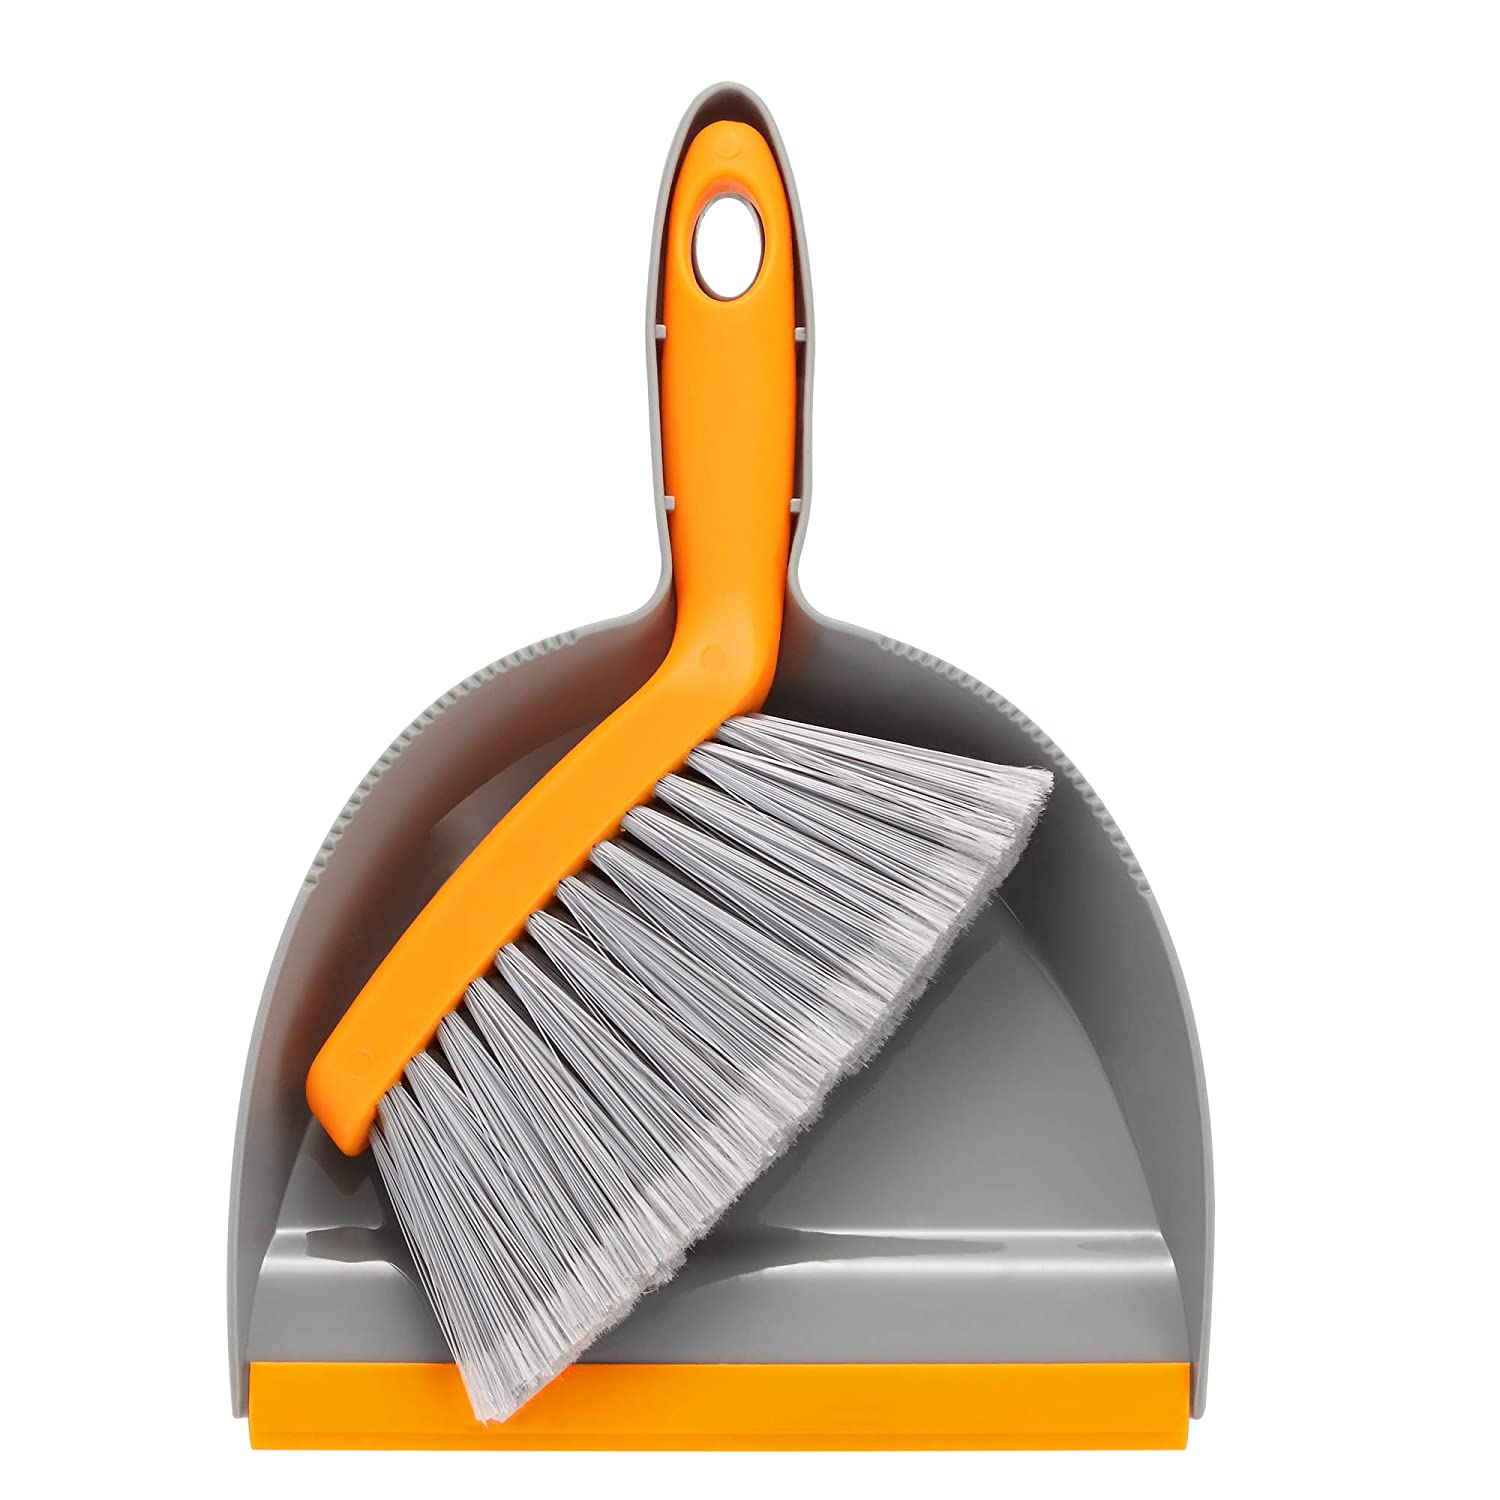 Dustpan and Brush Set for House Floor Cleaning security Office Sofa Under blast sales Desk